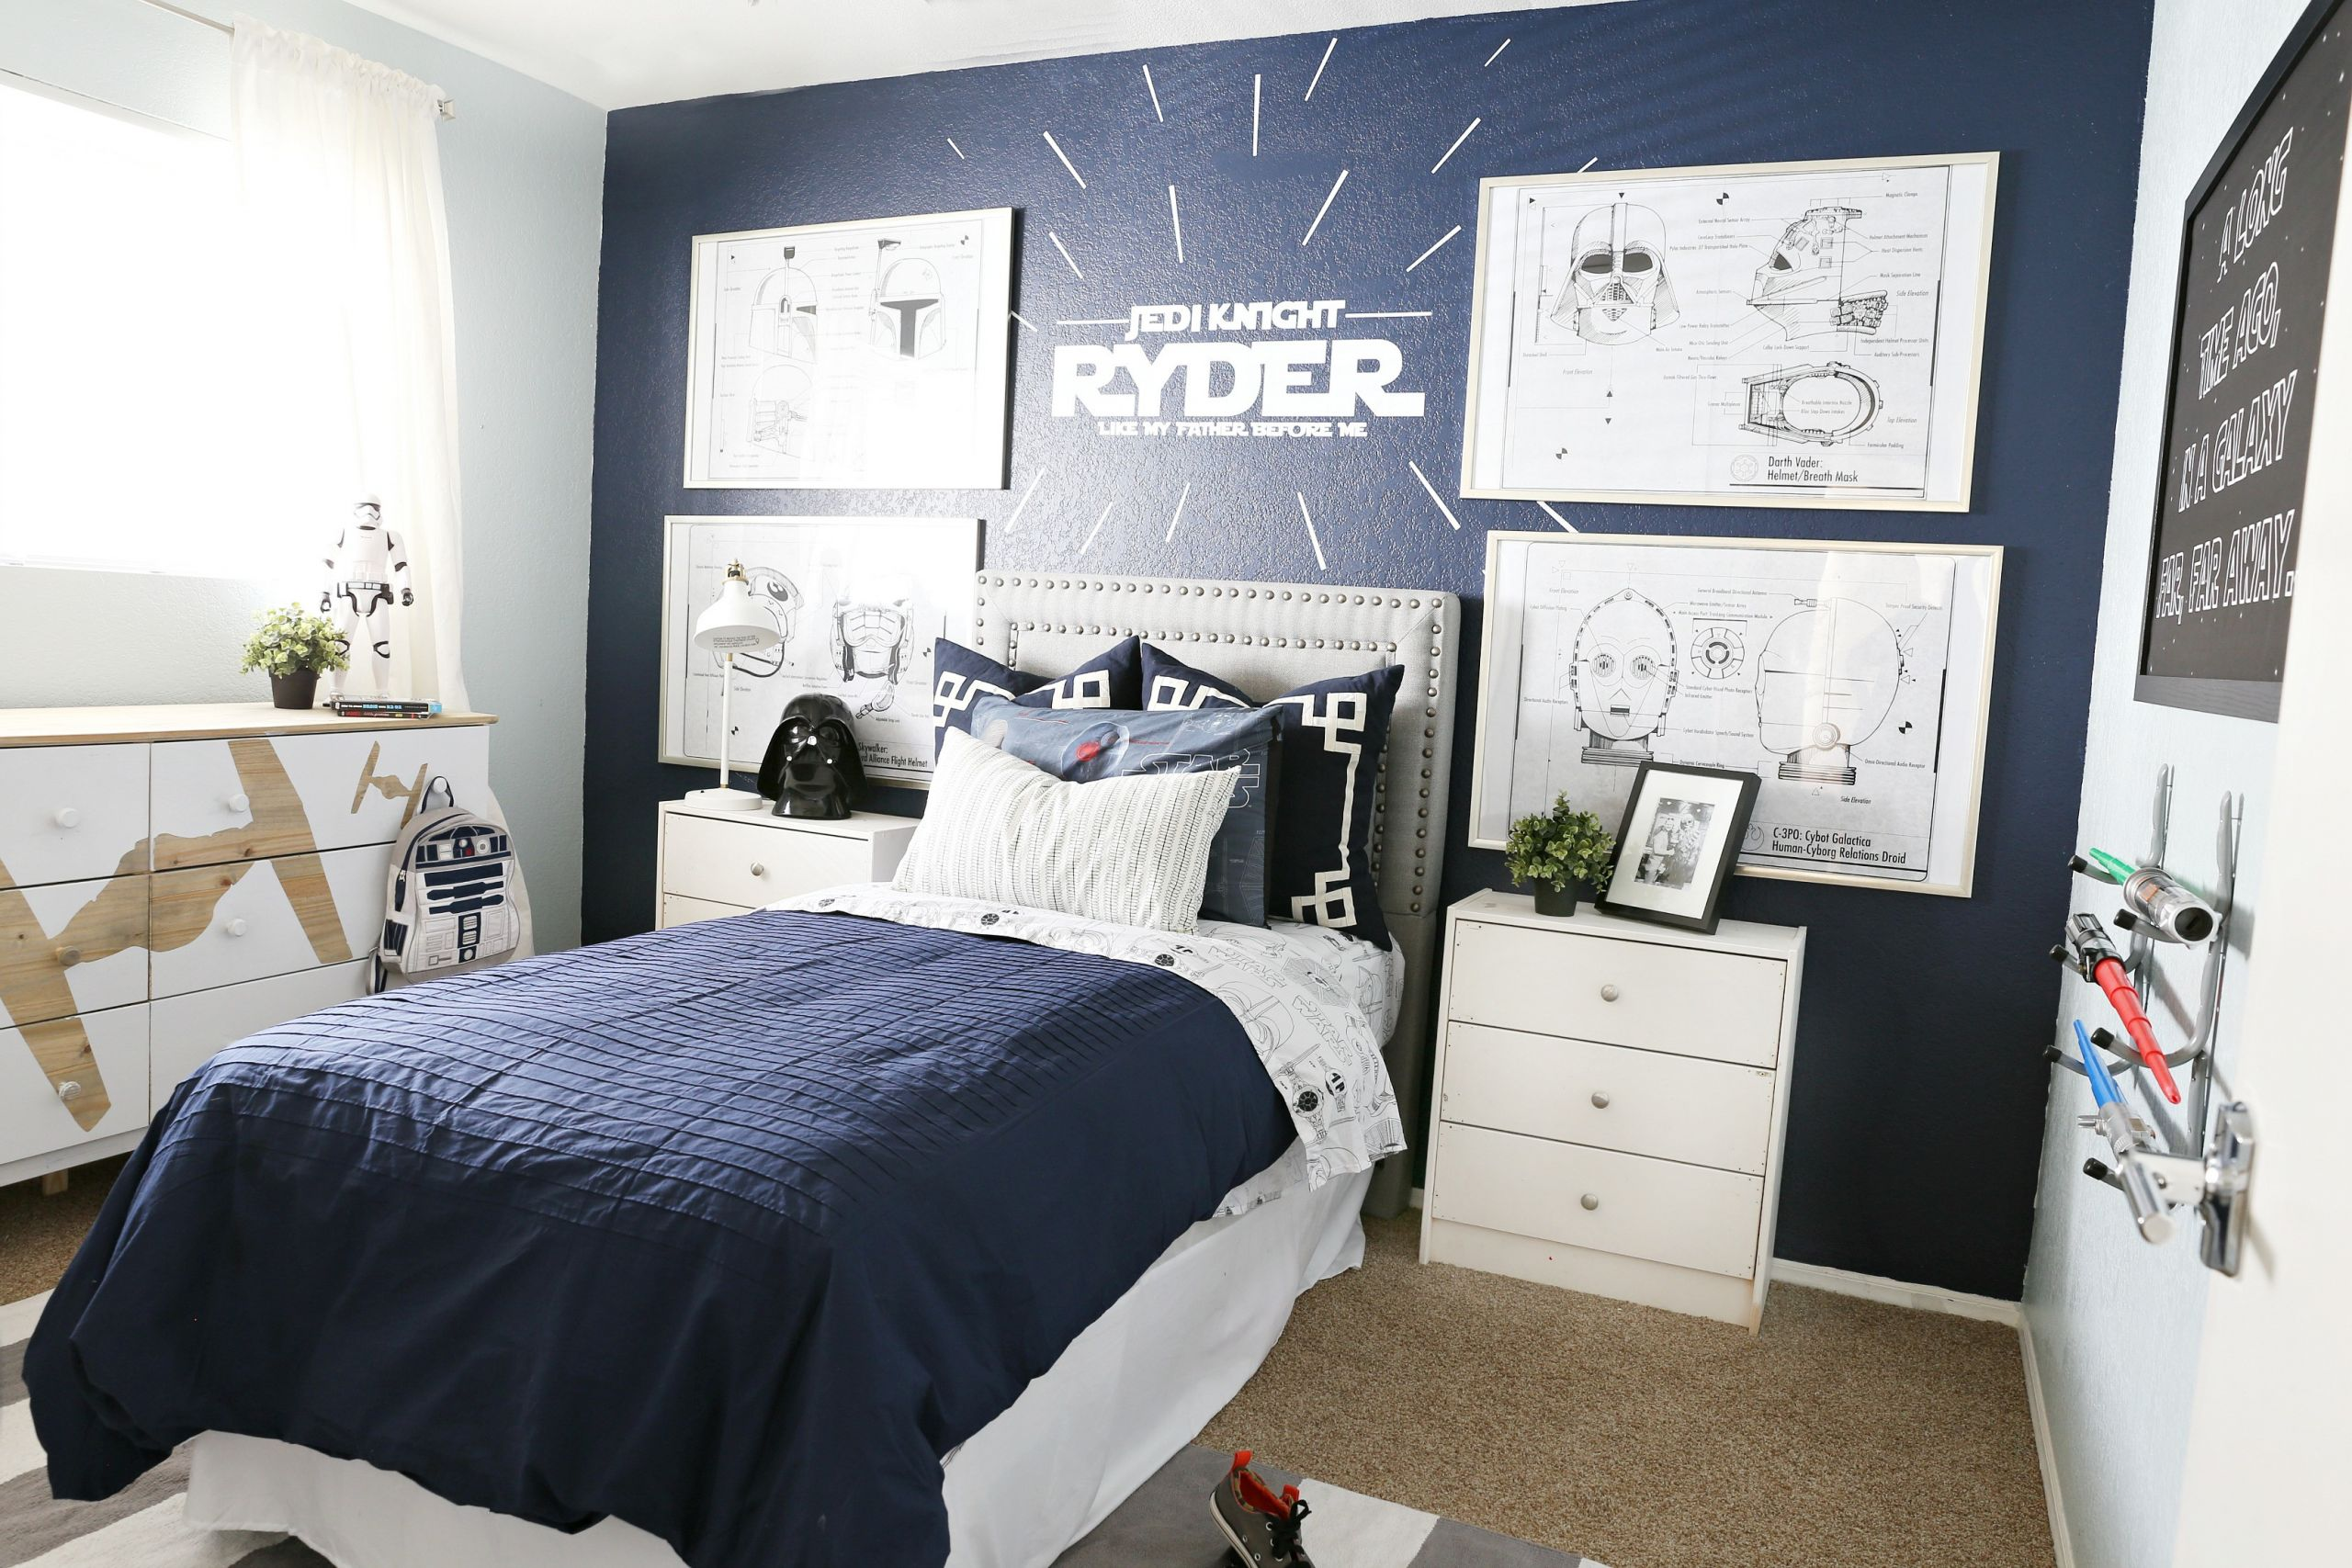 Star Wars Bedroom Decor  Star Wars Kids Bedroom Classy Clutter